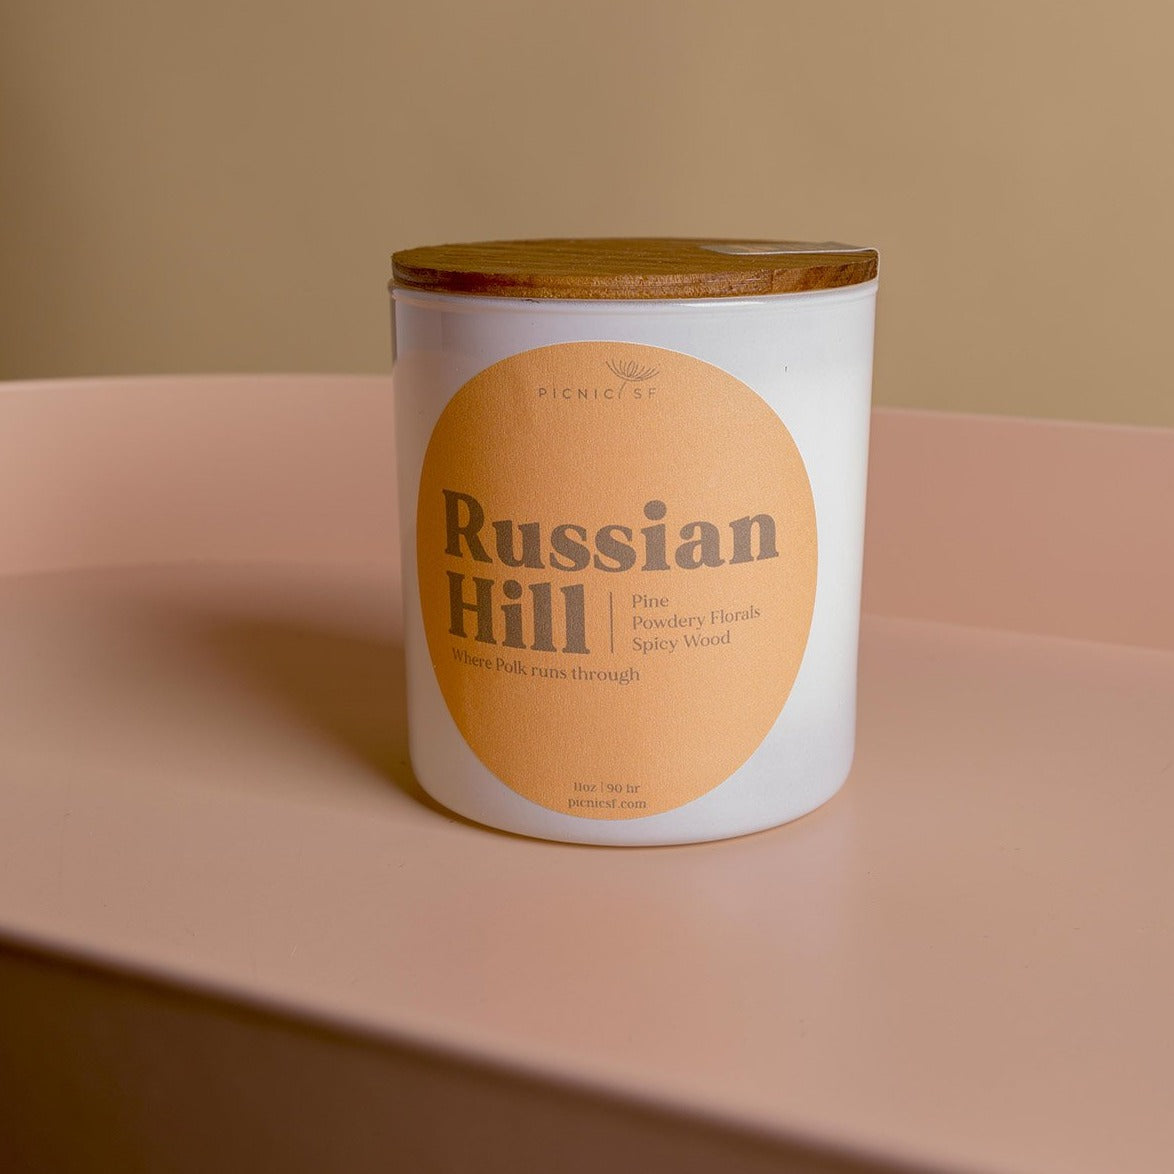 Russian Hill candle a Picnic exclusive San Francisco candle is available at Picnic SF